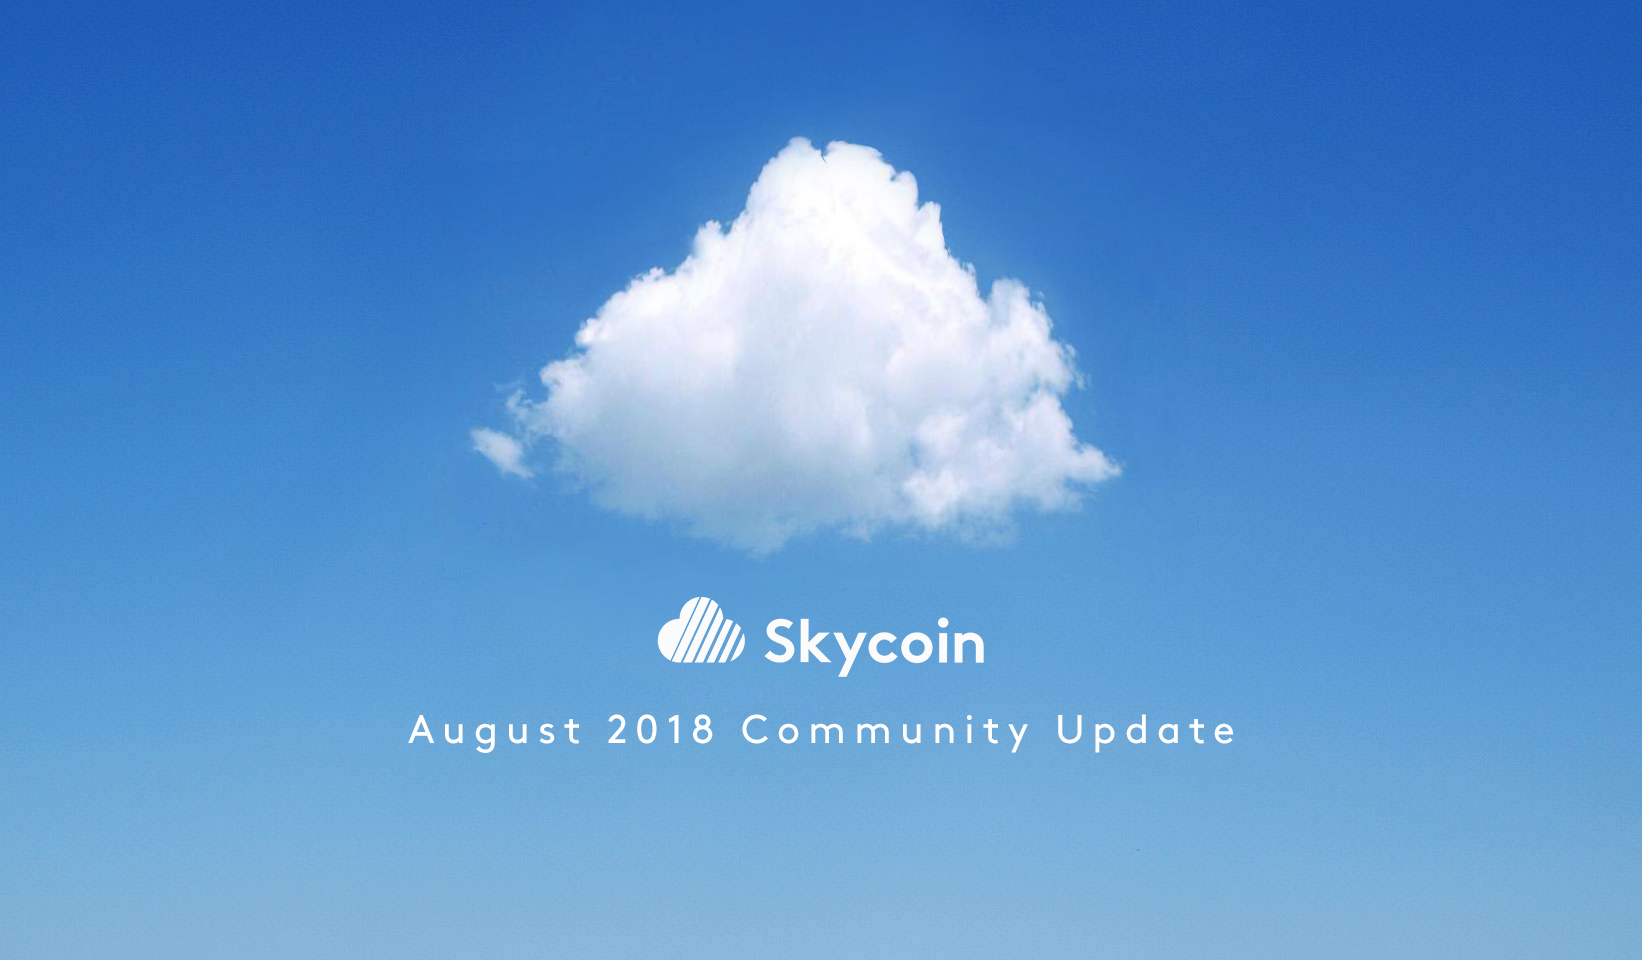 August 2018 Community Update - Skycoin - Medium